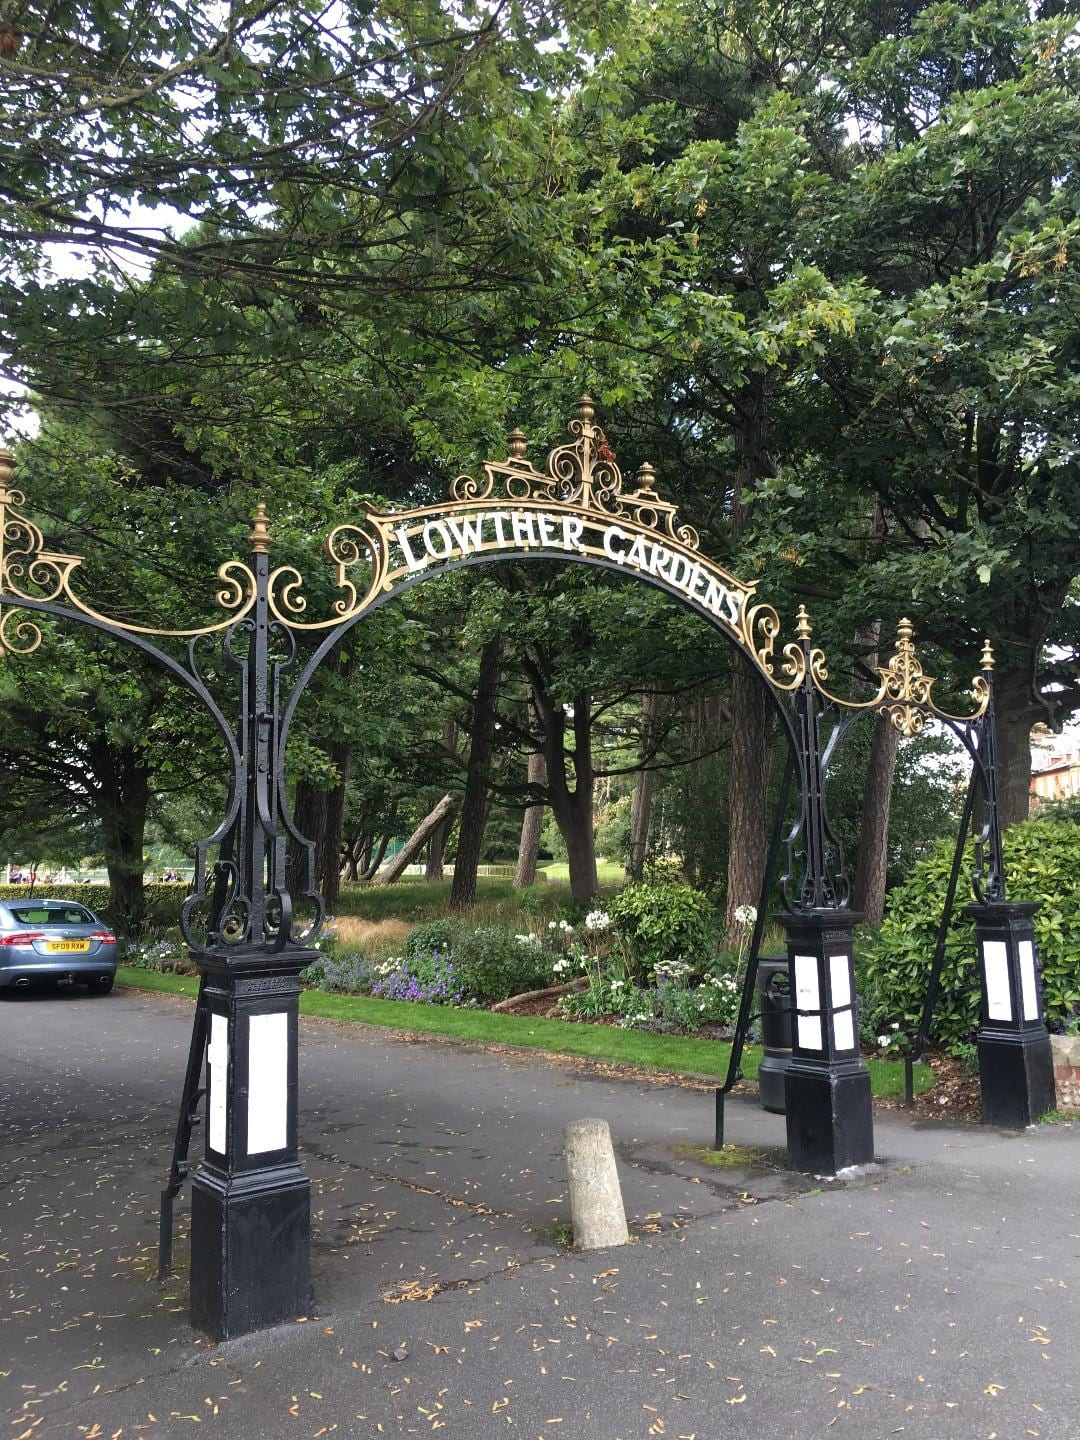 Gates to Lowther Gardens in Lytham